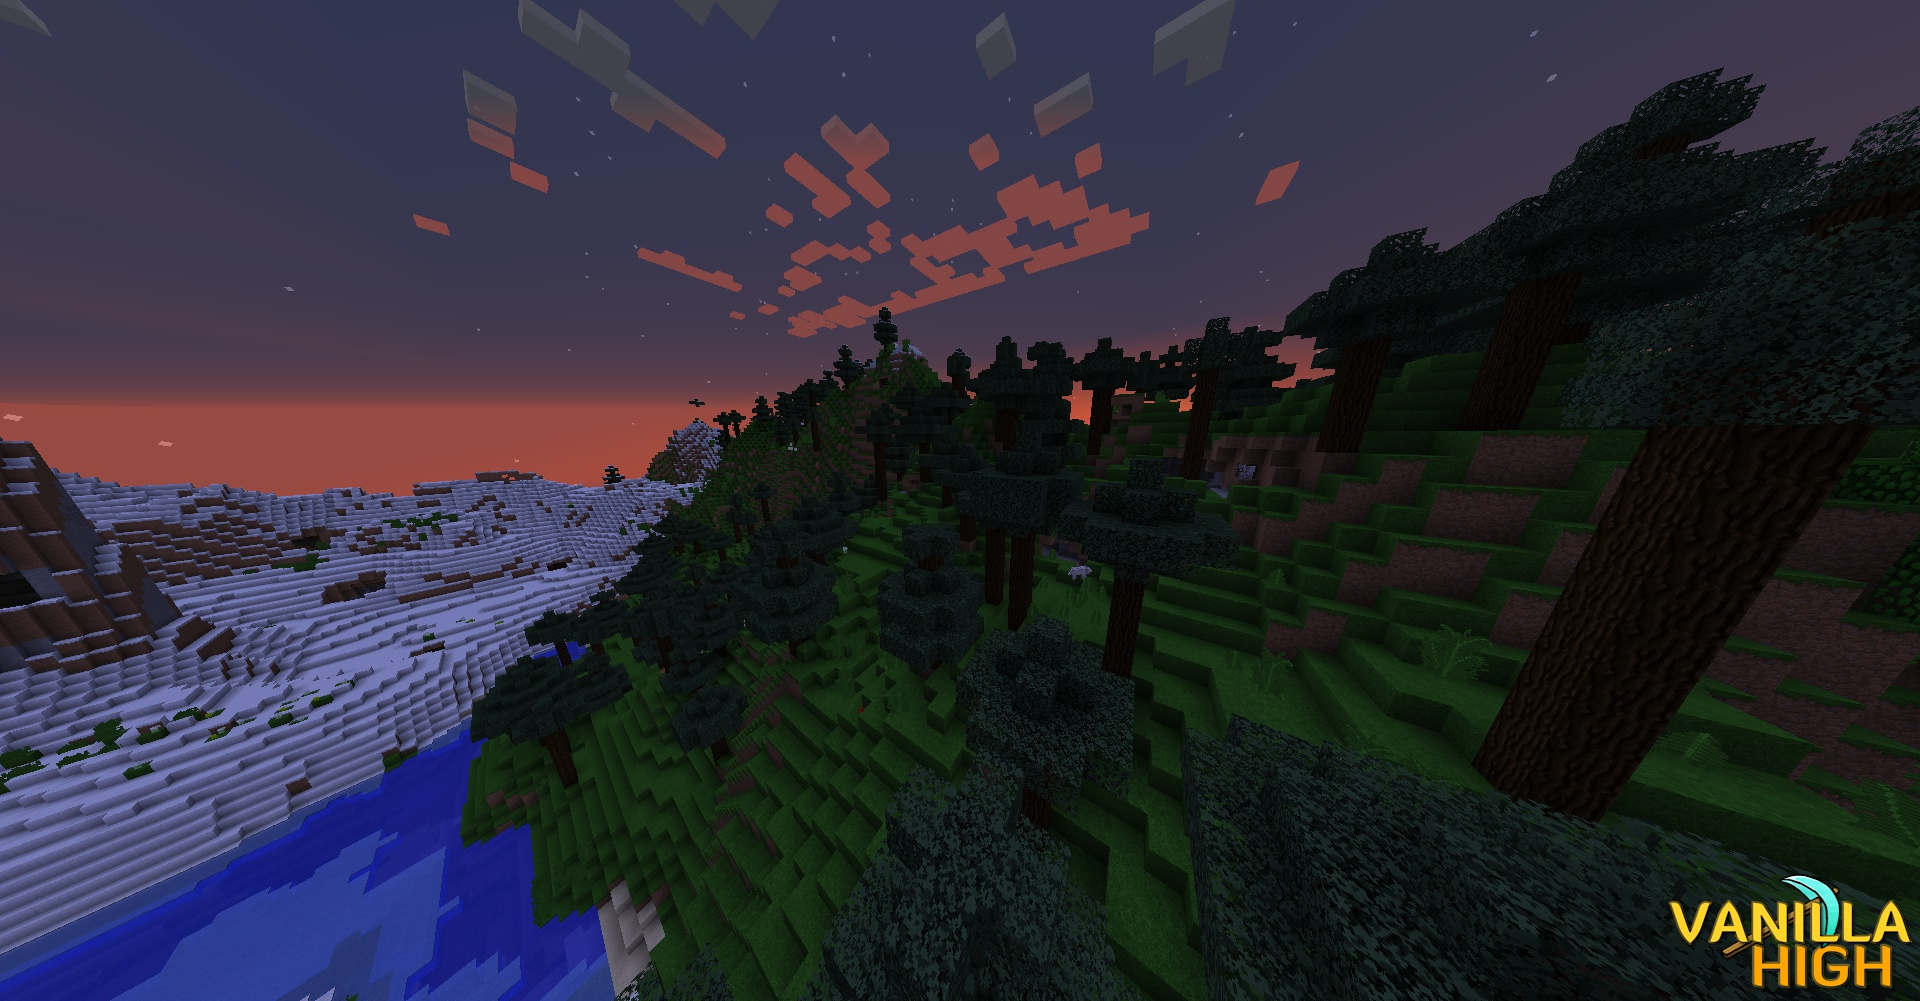 From Further Exploring I Found... - Nothing but snow, and then a beautiful scene at the sun rose into the sky.